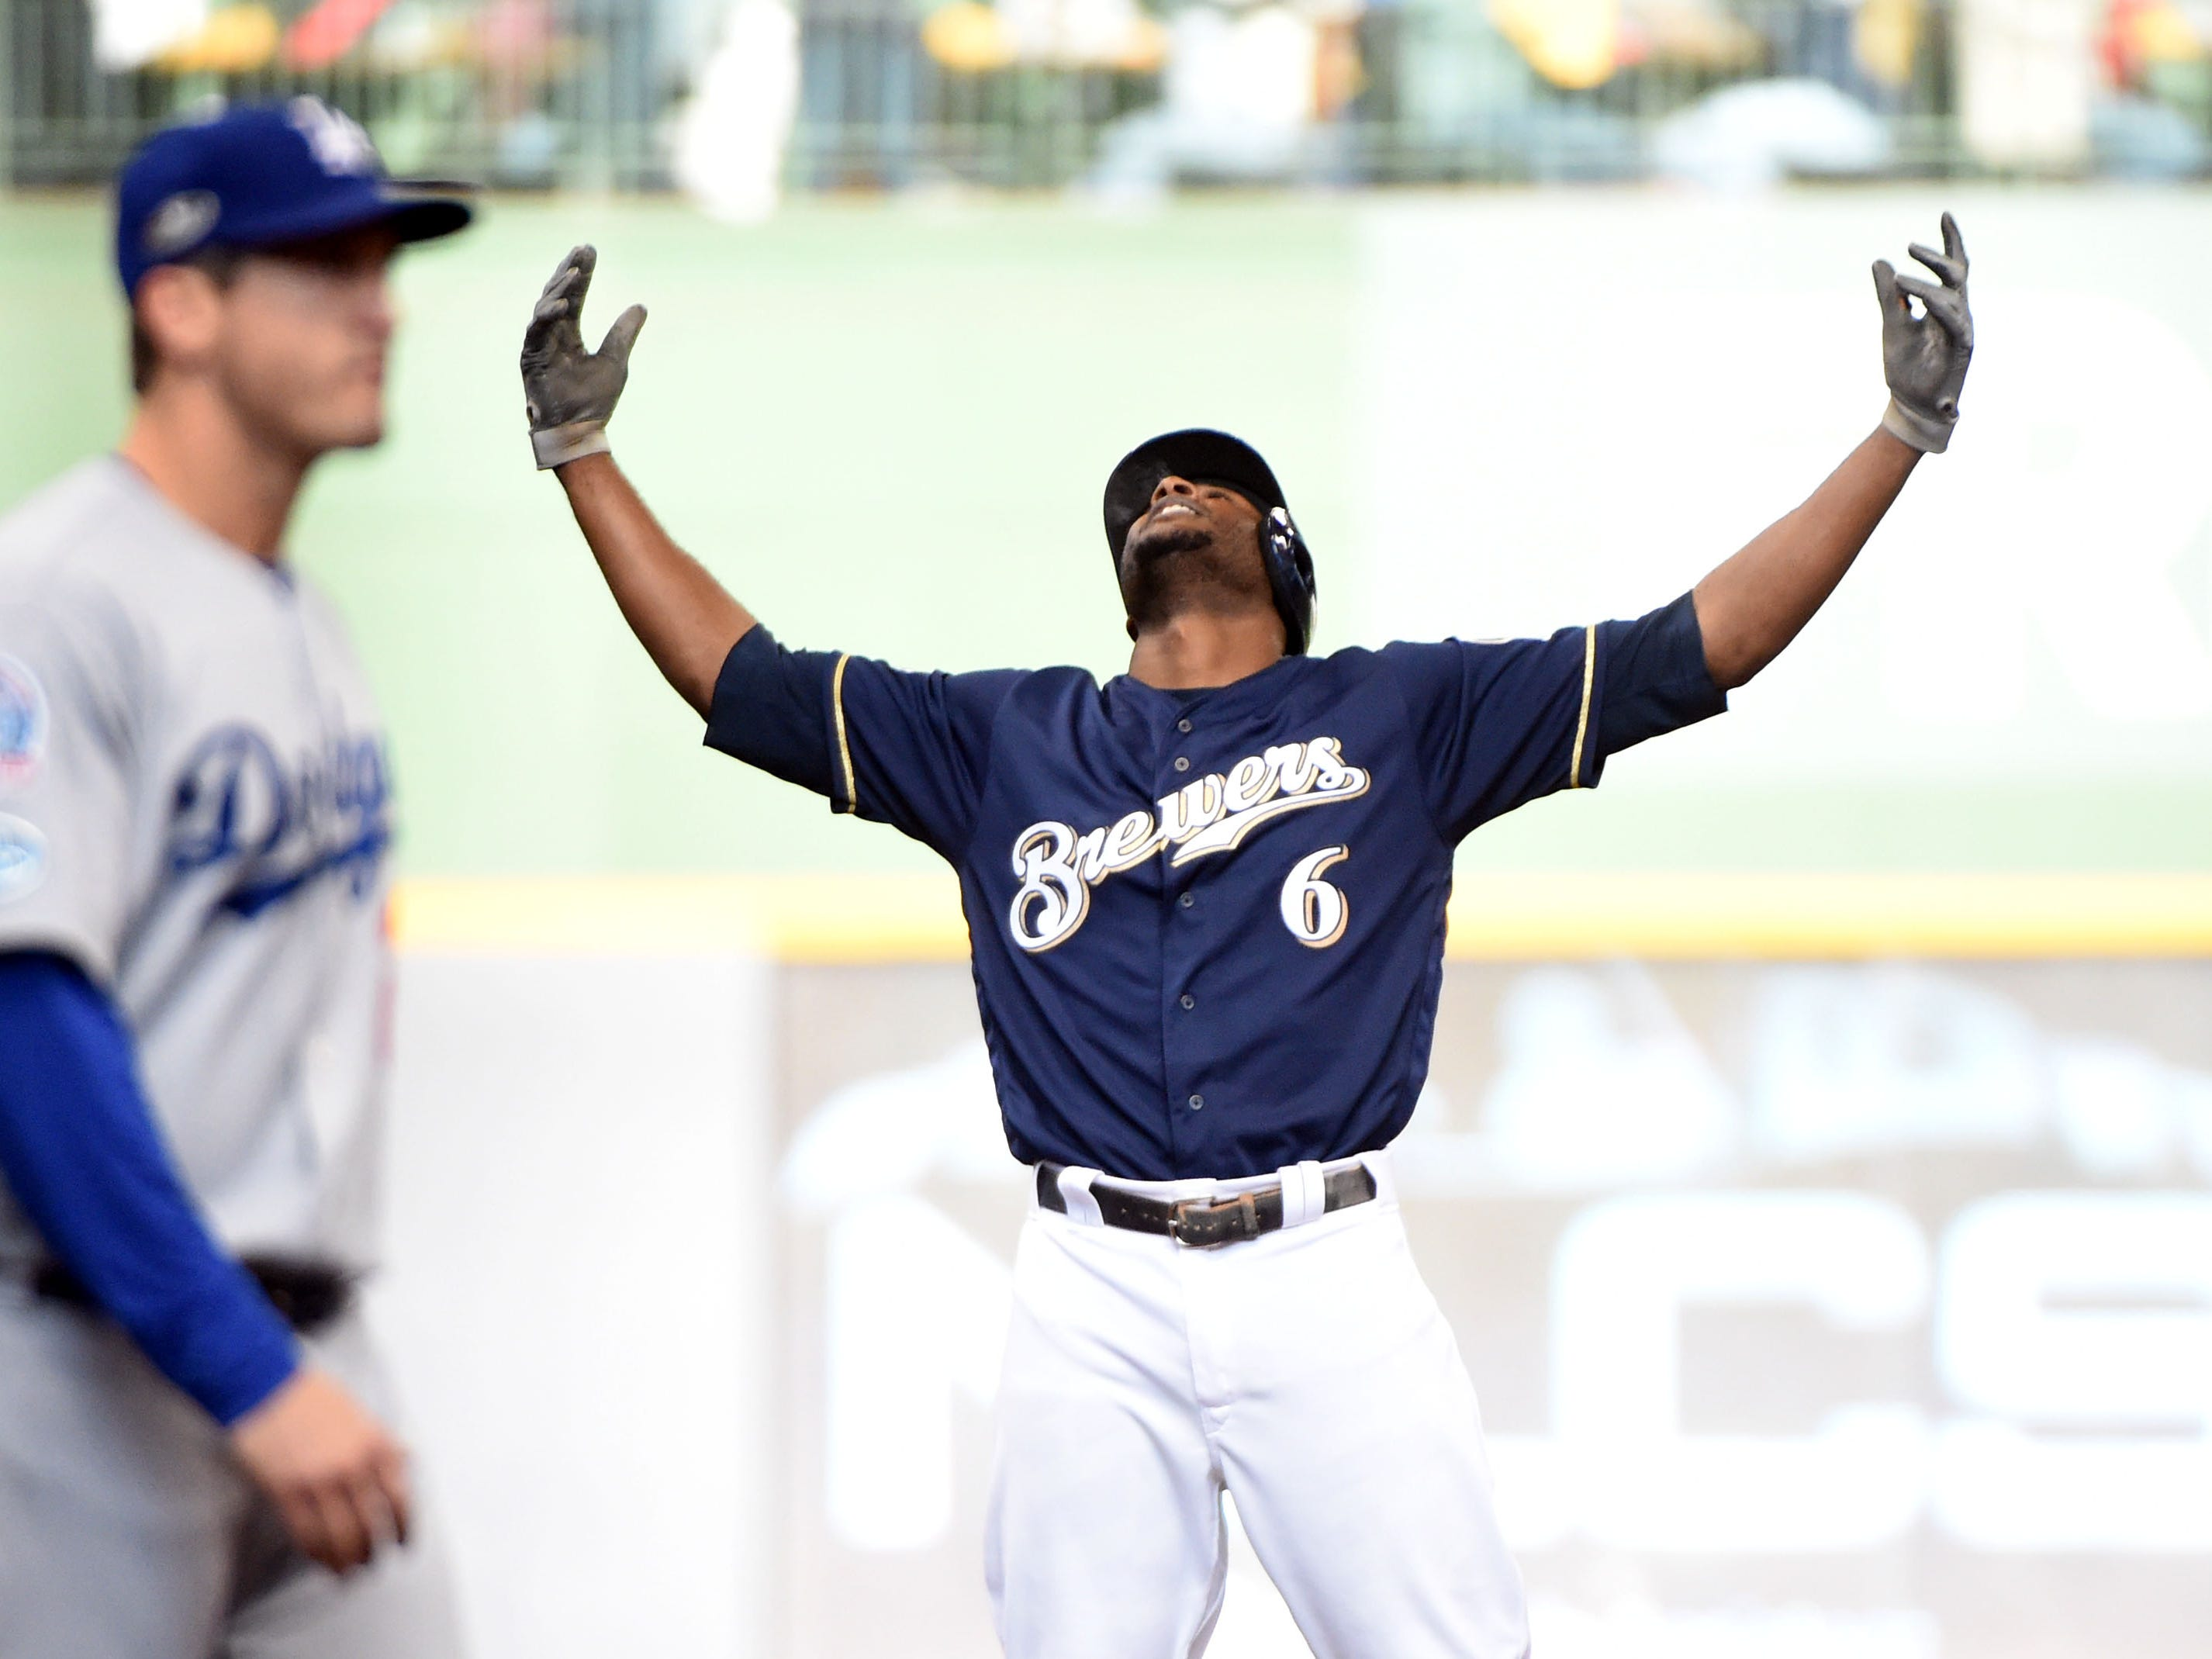 NLCS Game 2: Brewers center fielder Lorenzo Cain reacts after hitting a double in the fifth inning.